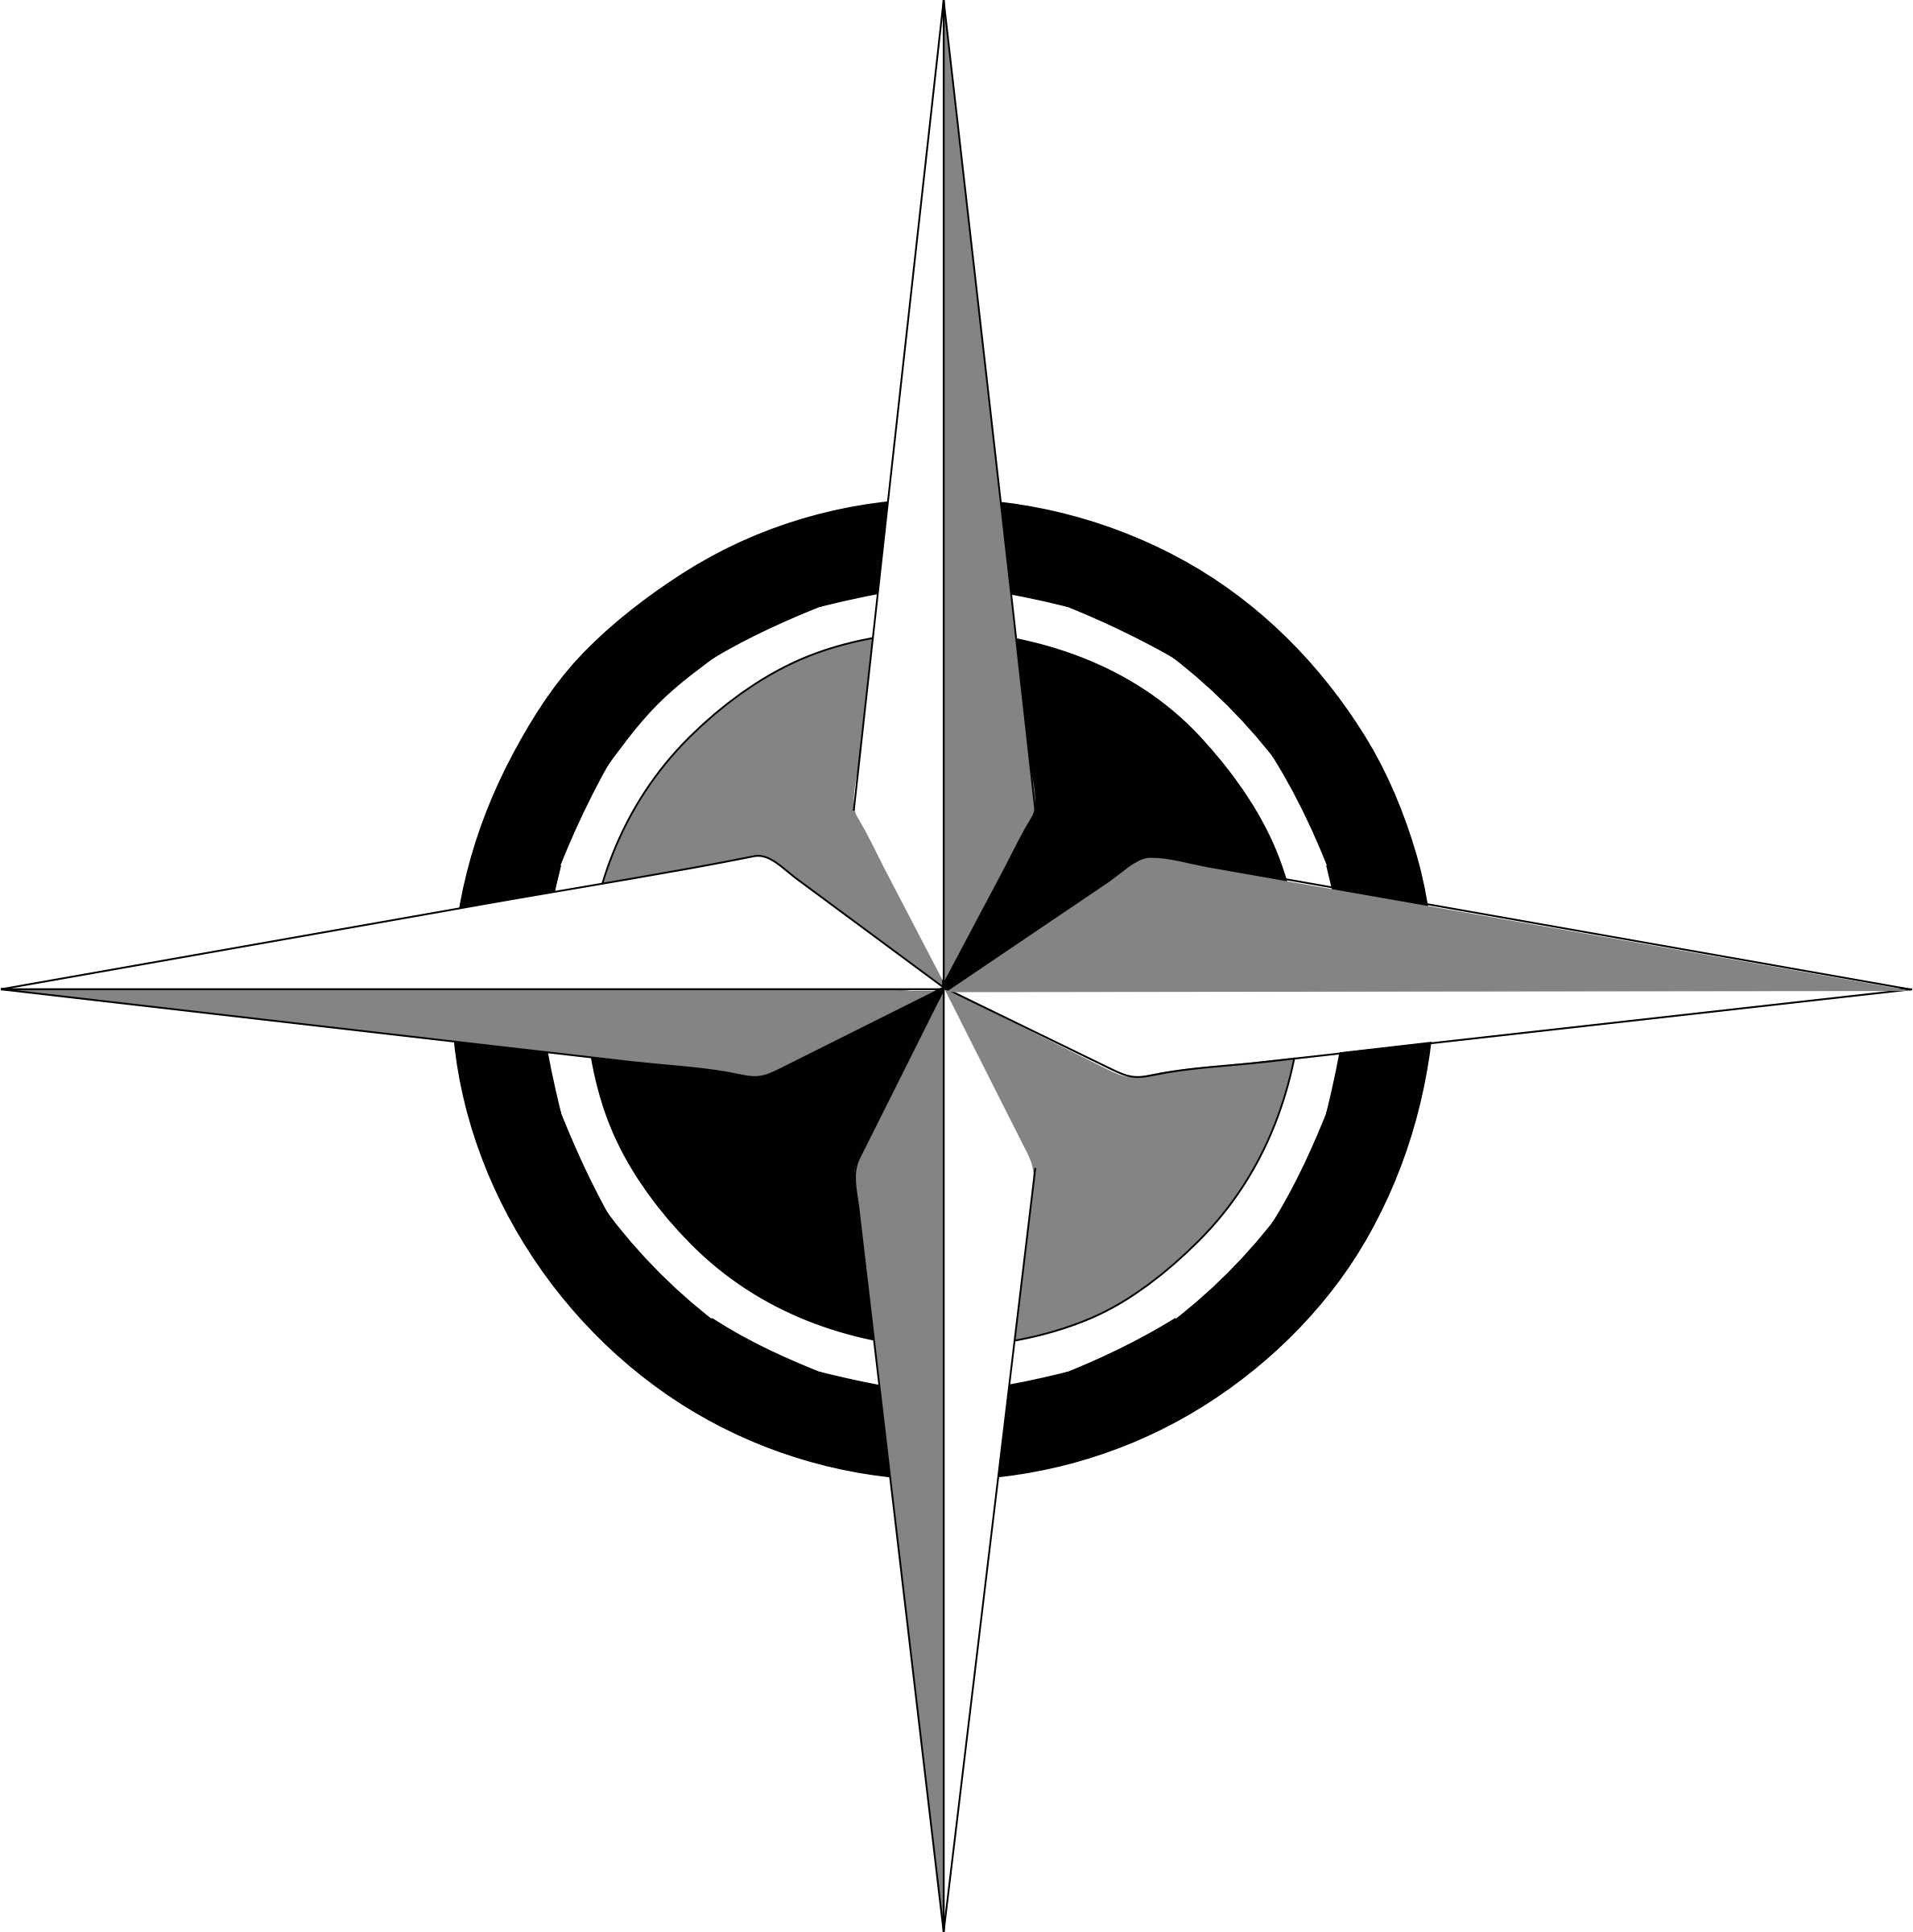 This free Icons Png design of compass rose 1 PlusPng.com  - Compass Rose PNG Black And White